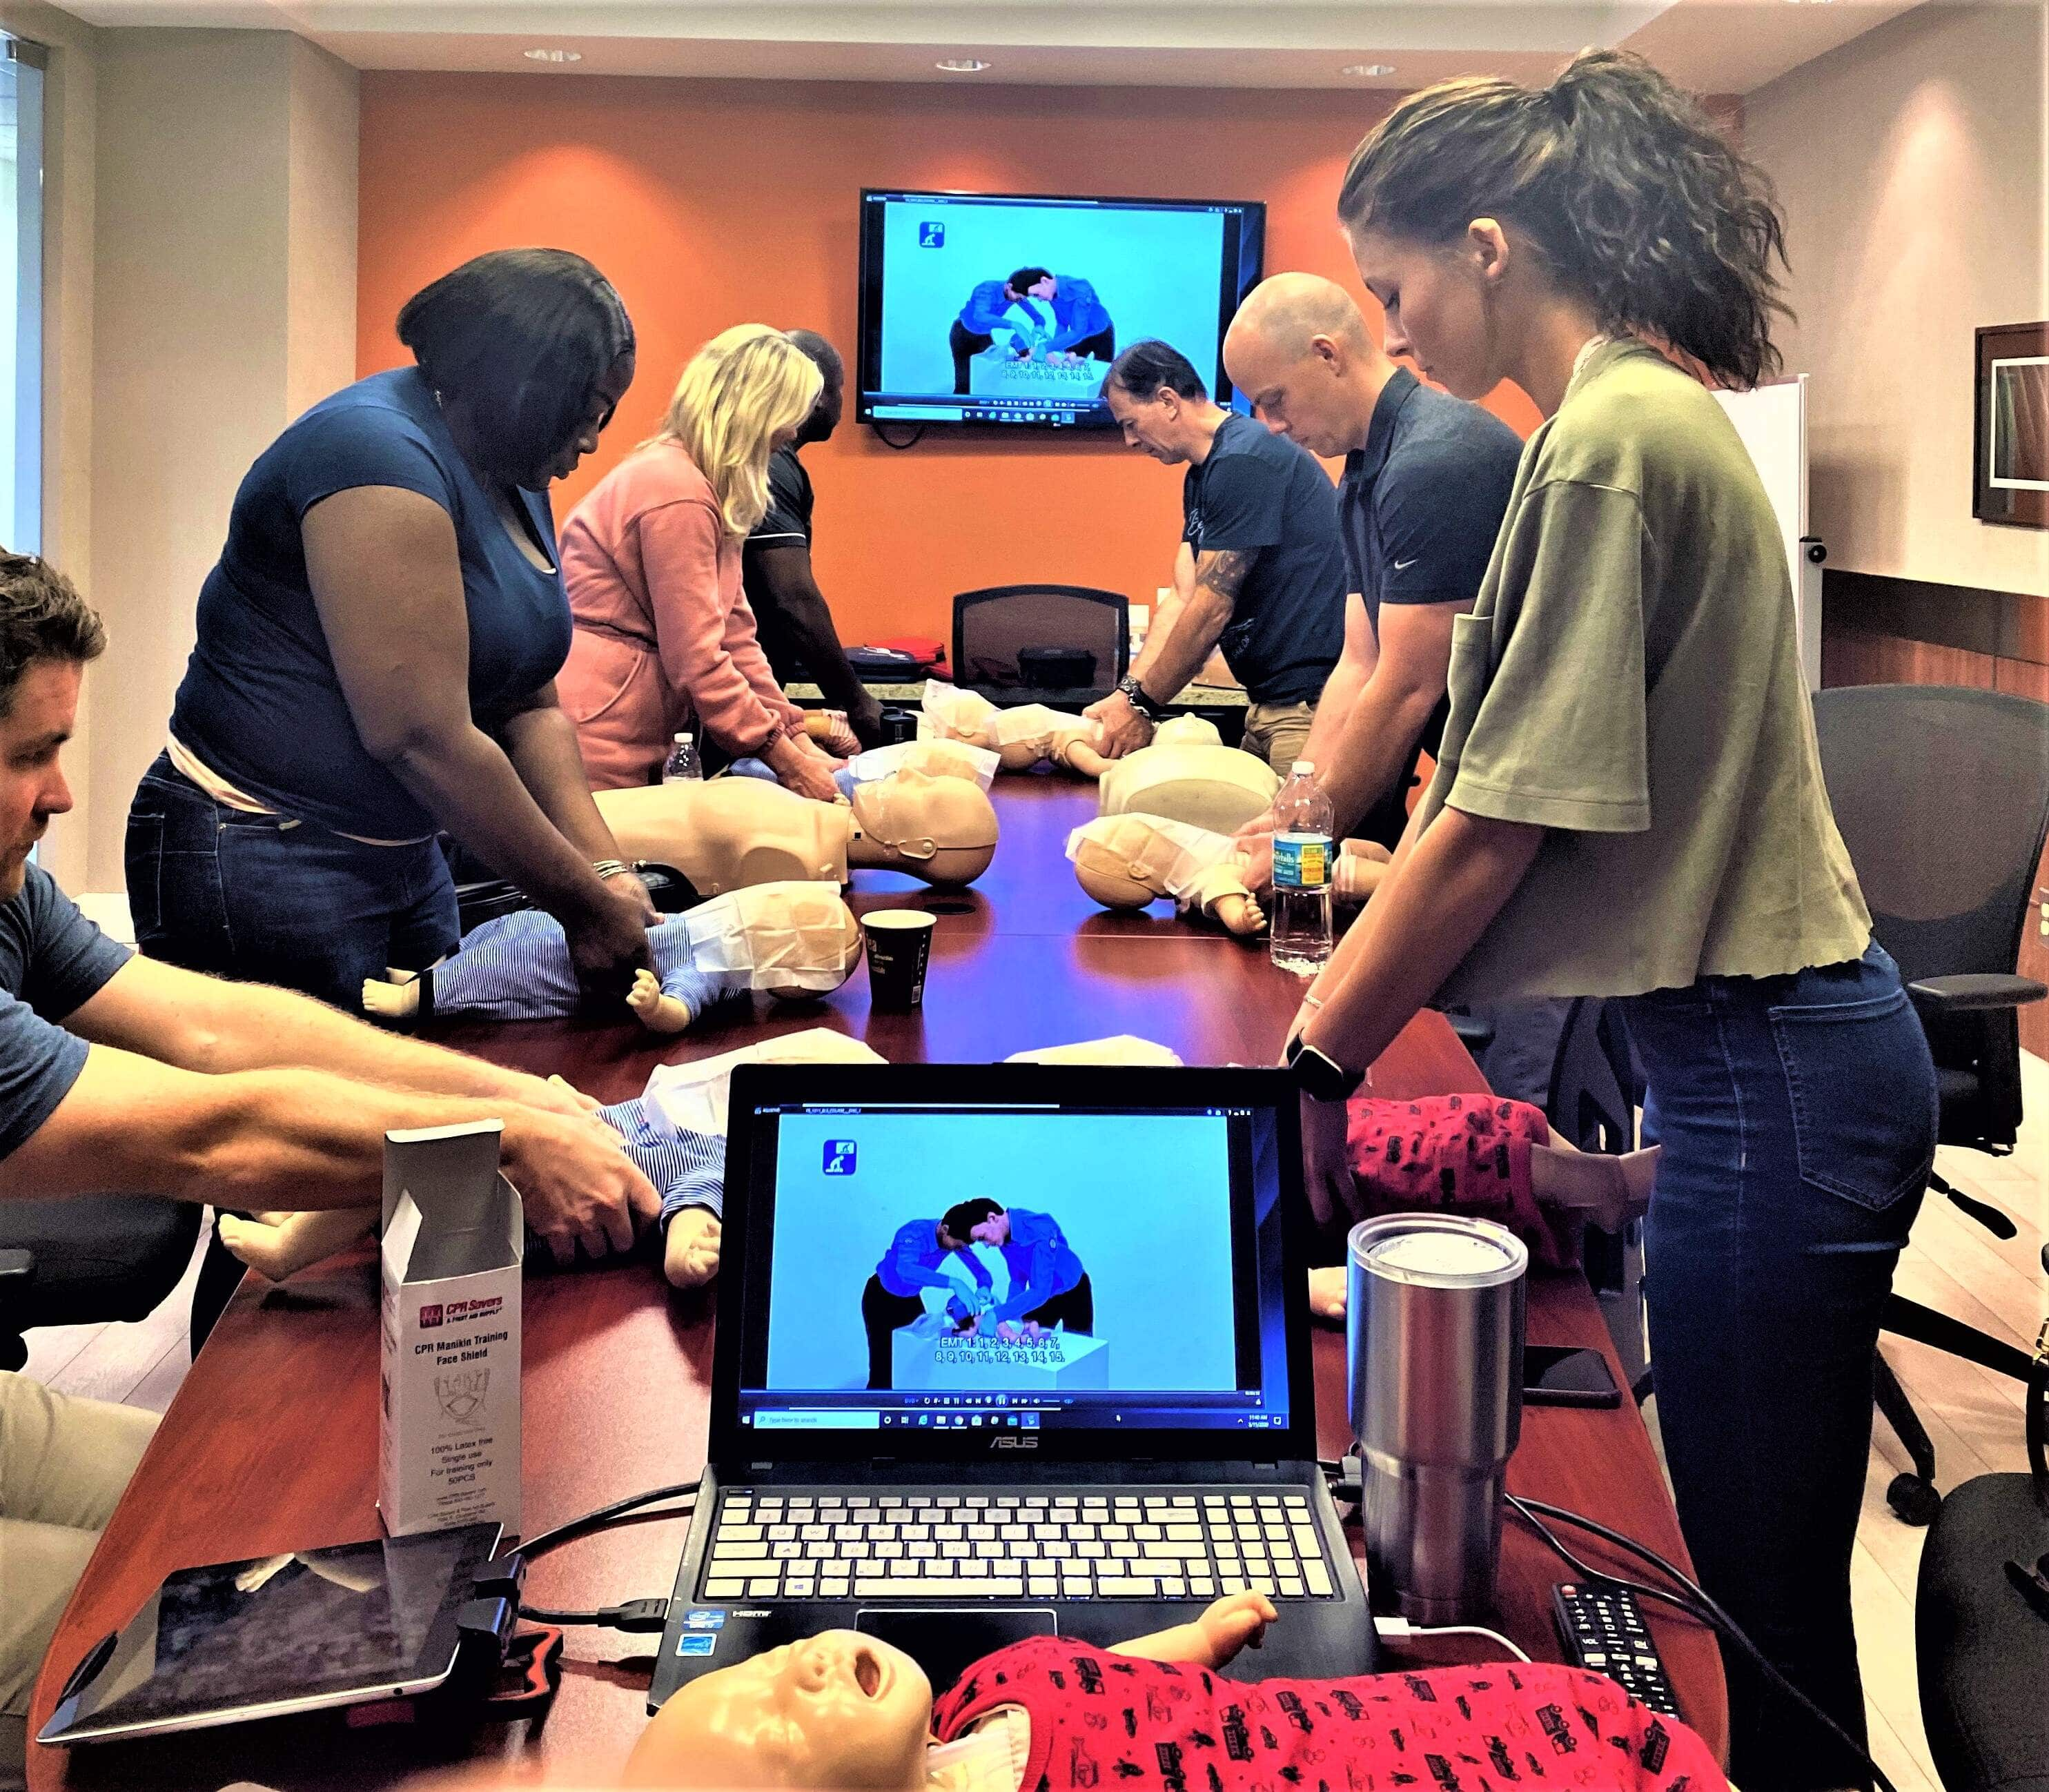 Pompano Beach cpr bls first aid certification classes